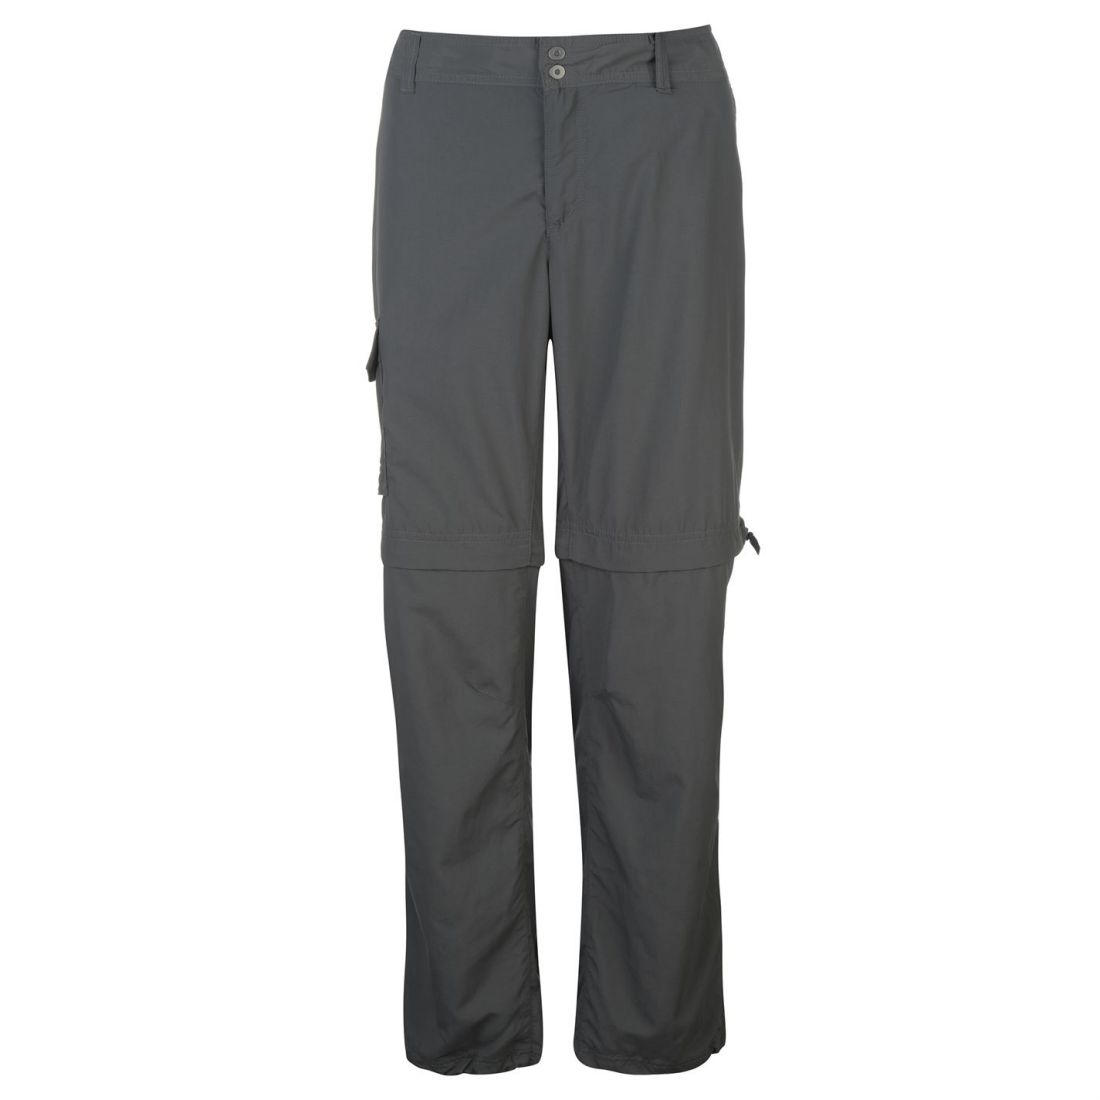 Columbia Womens Silver Ridge Zip Convertible Pants Walking ... b327c9053